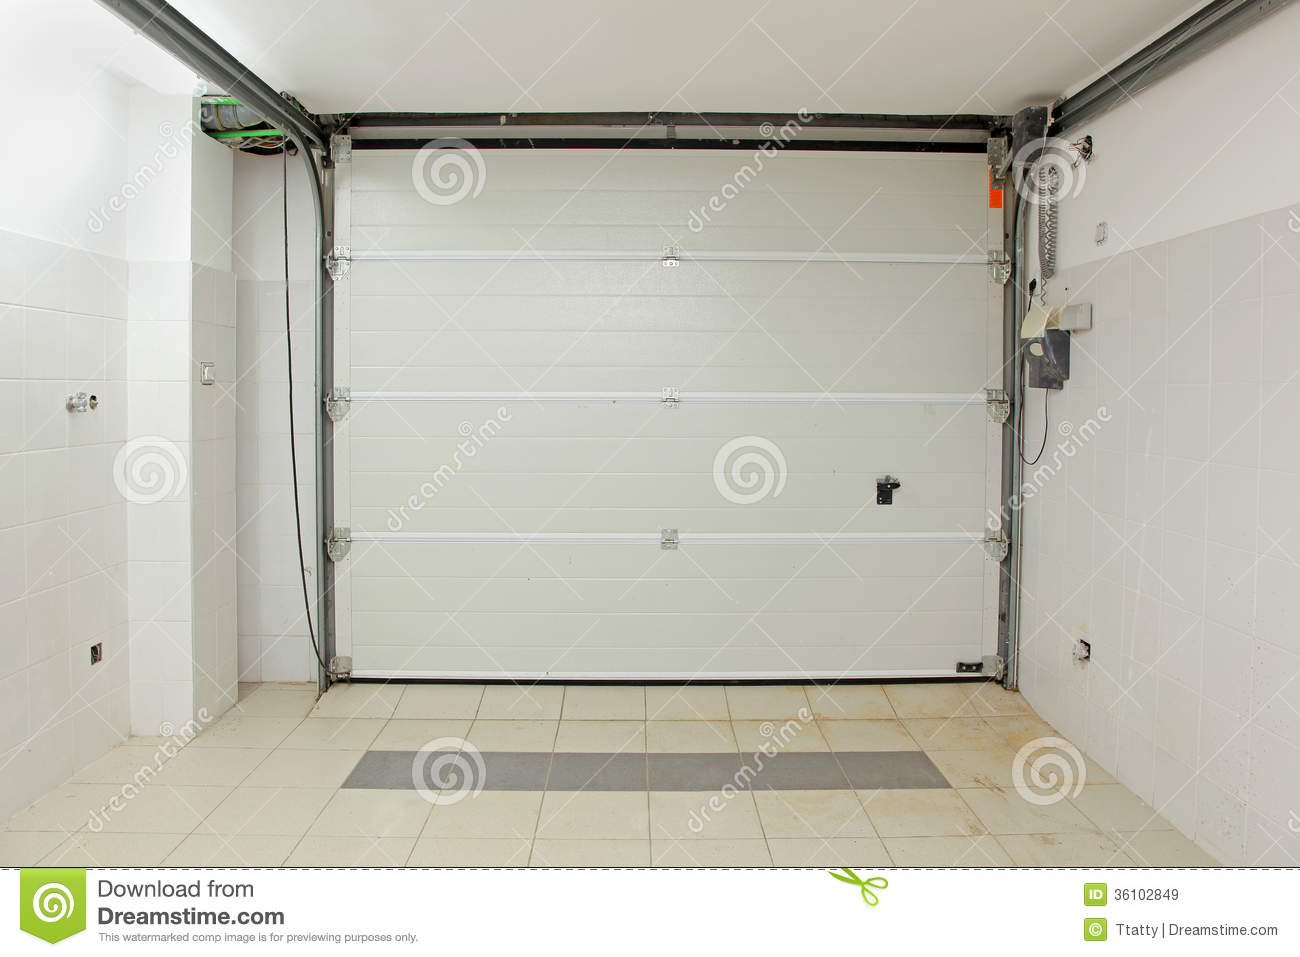 Photos From The Inside Of Garage Doors : Garage interior stock image of entrance